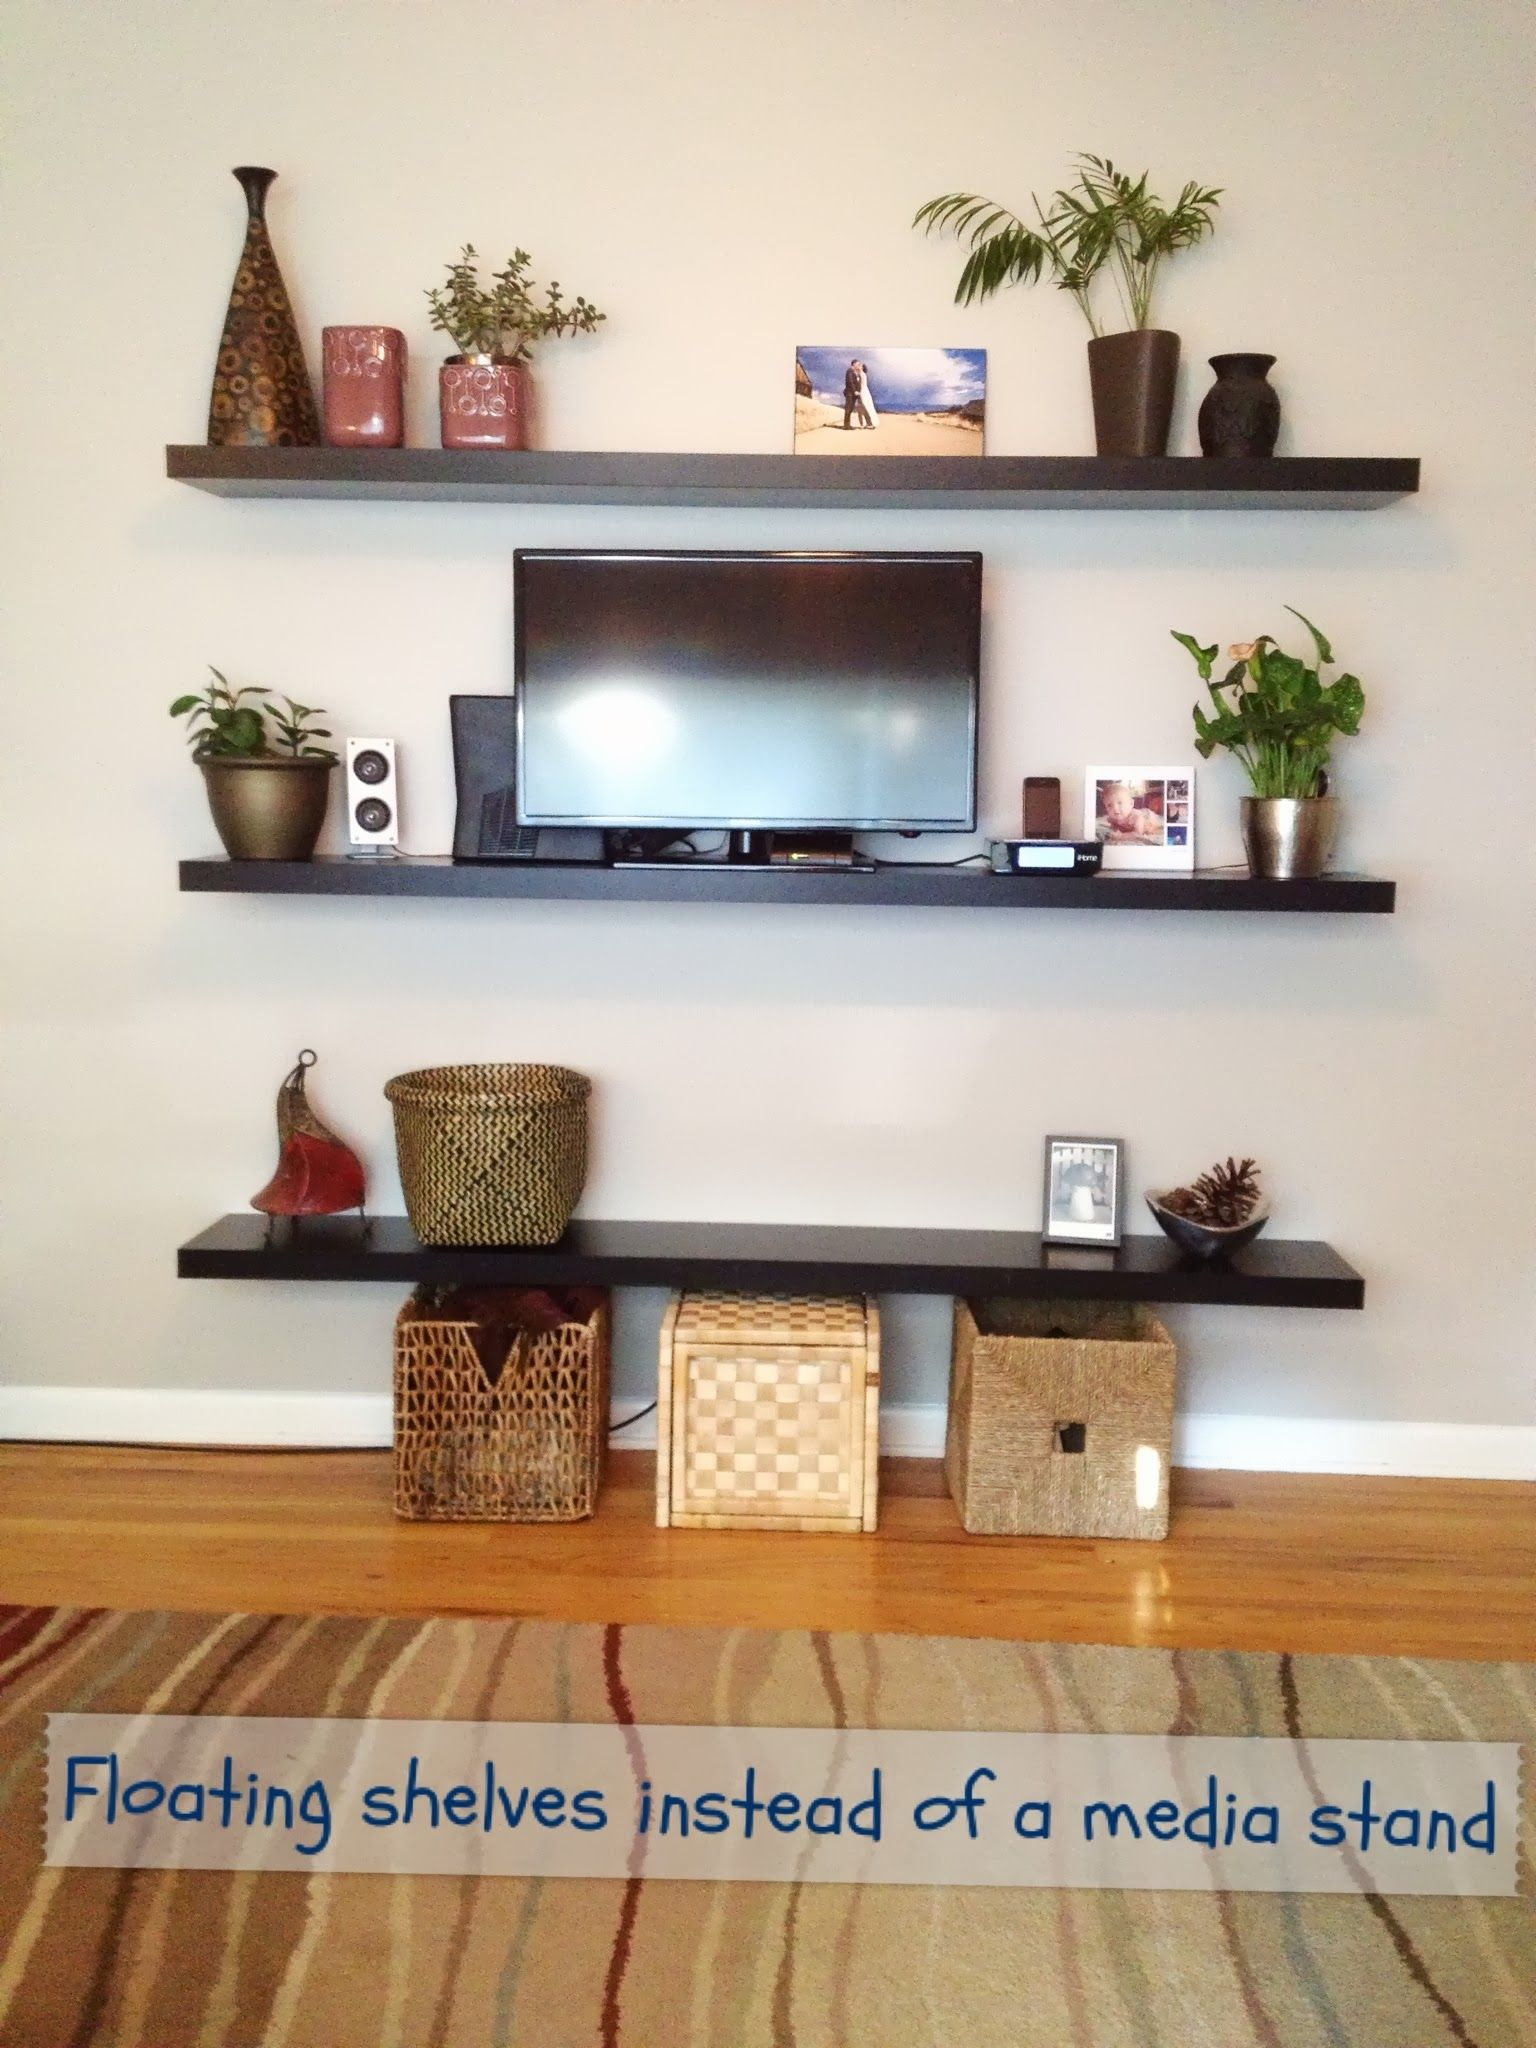 More Floating Shelves Mounted Tv Wall Mount And Shelves - Corner floating wall shelf hidden bracket wall shelving corner wall